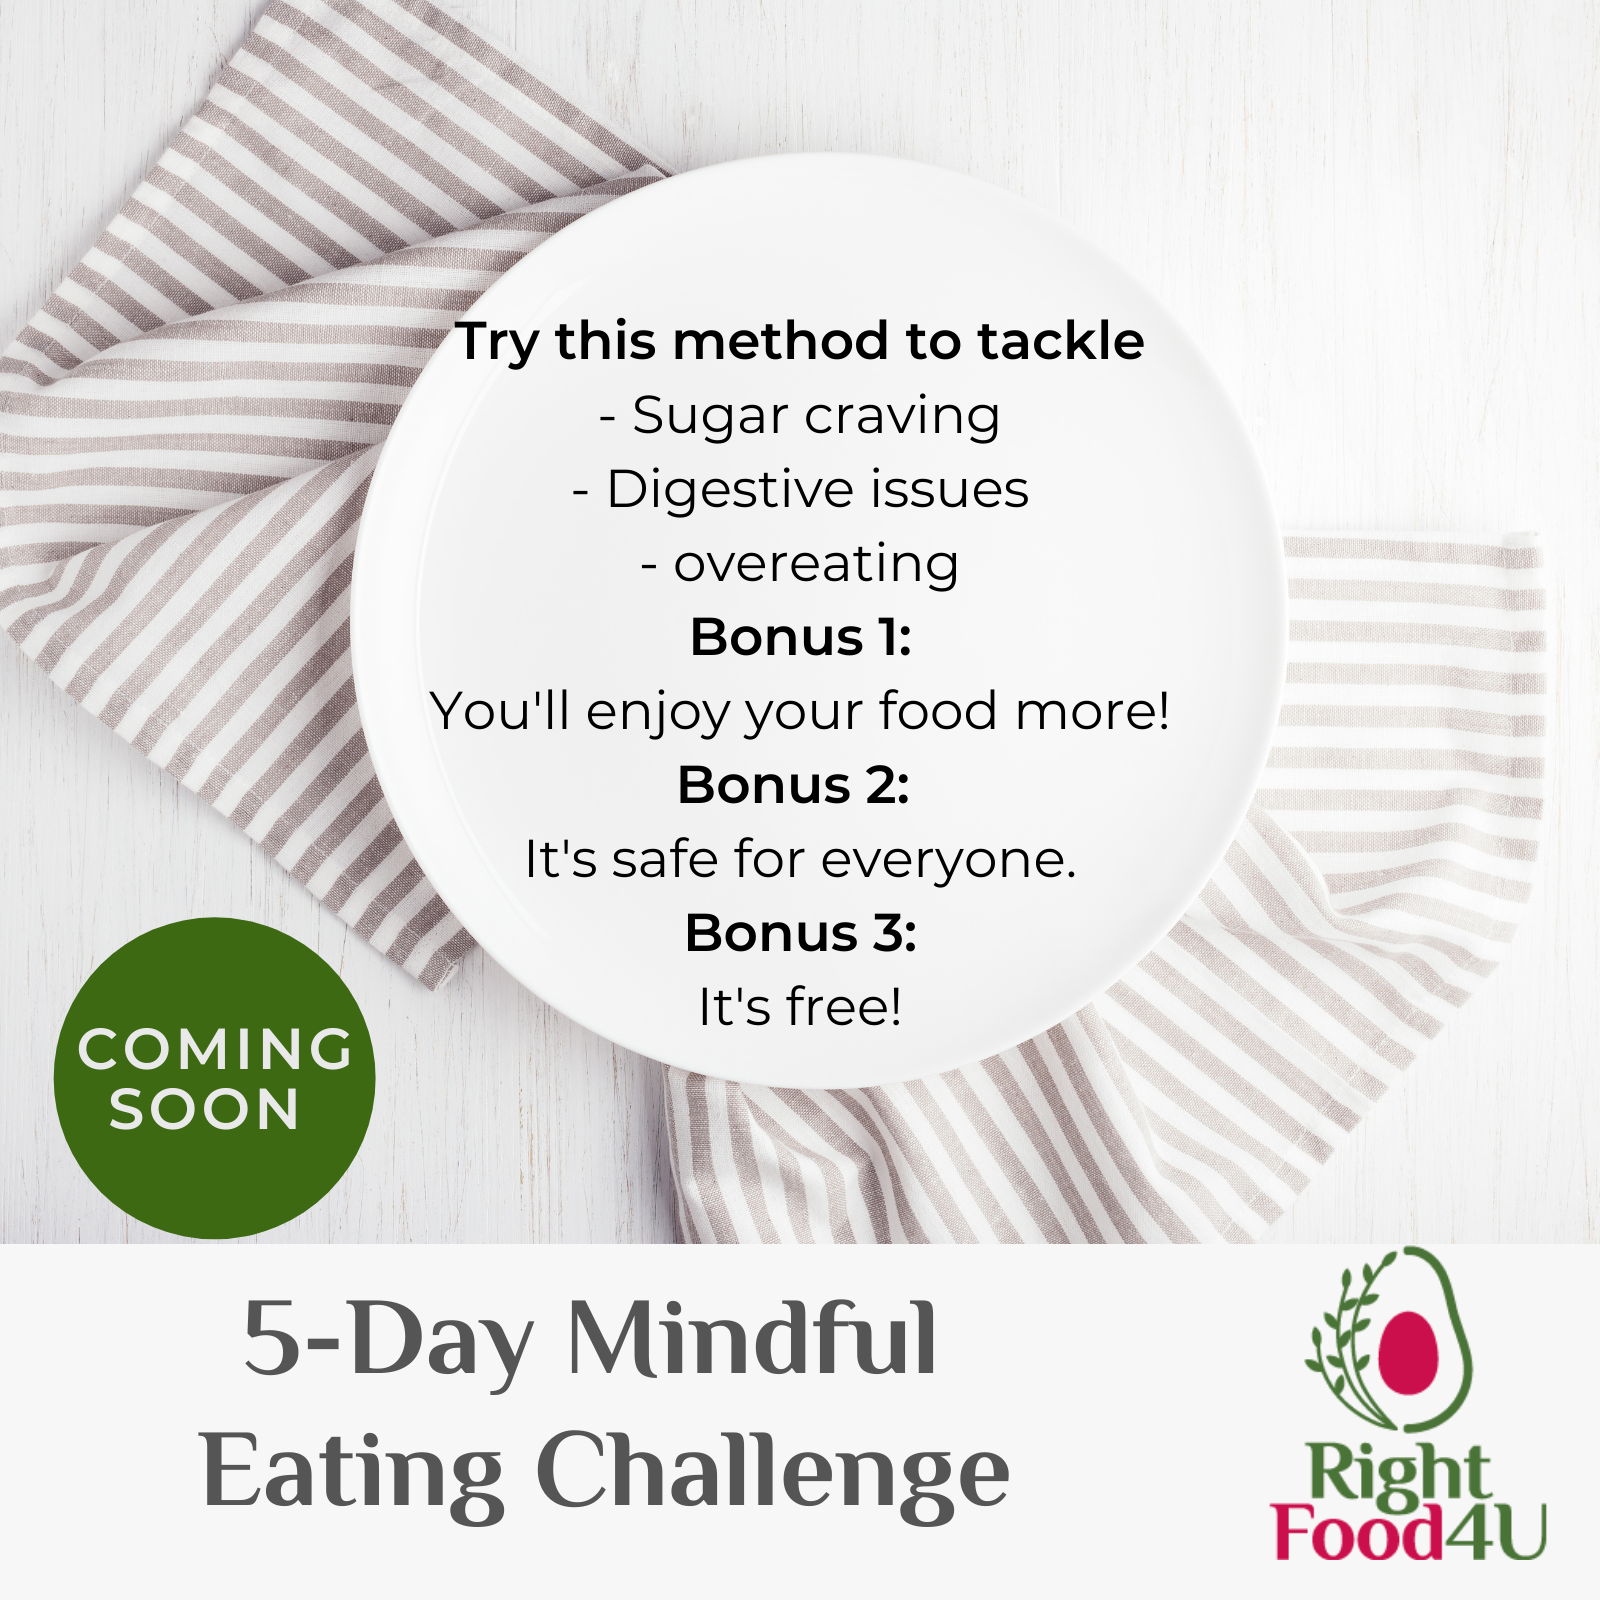 mindful eating to deal with sugar cravings